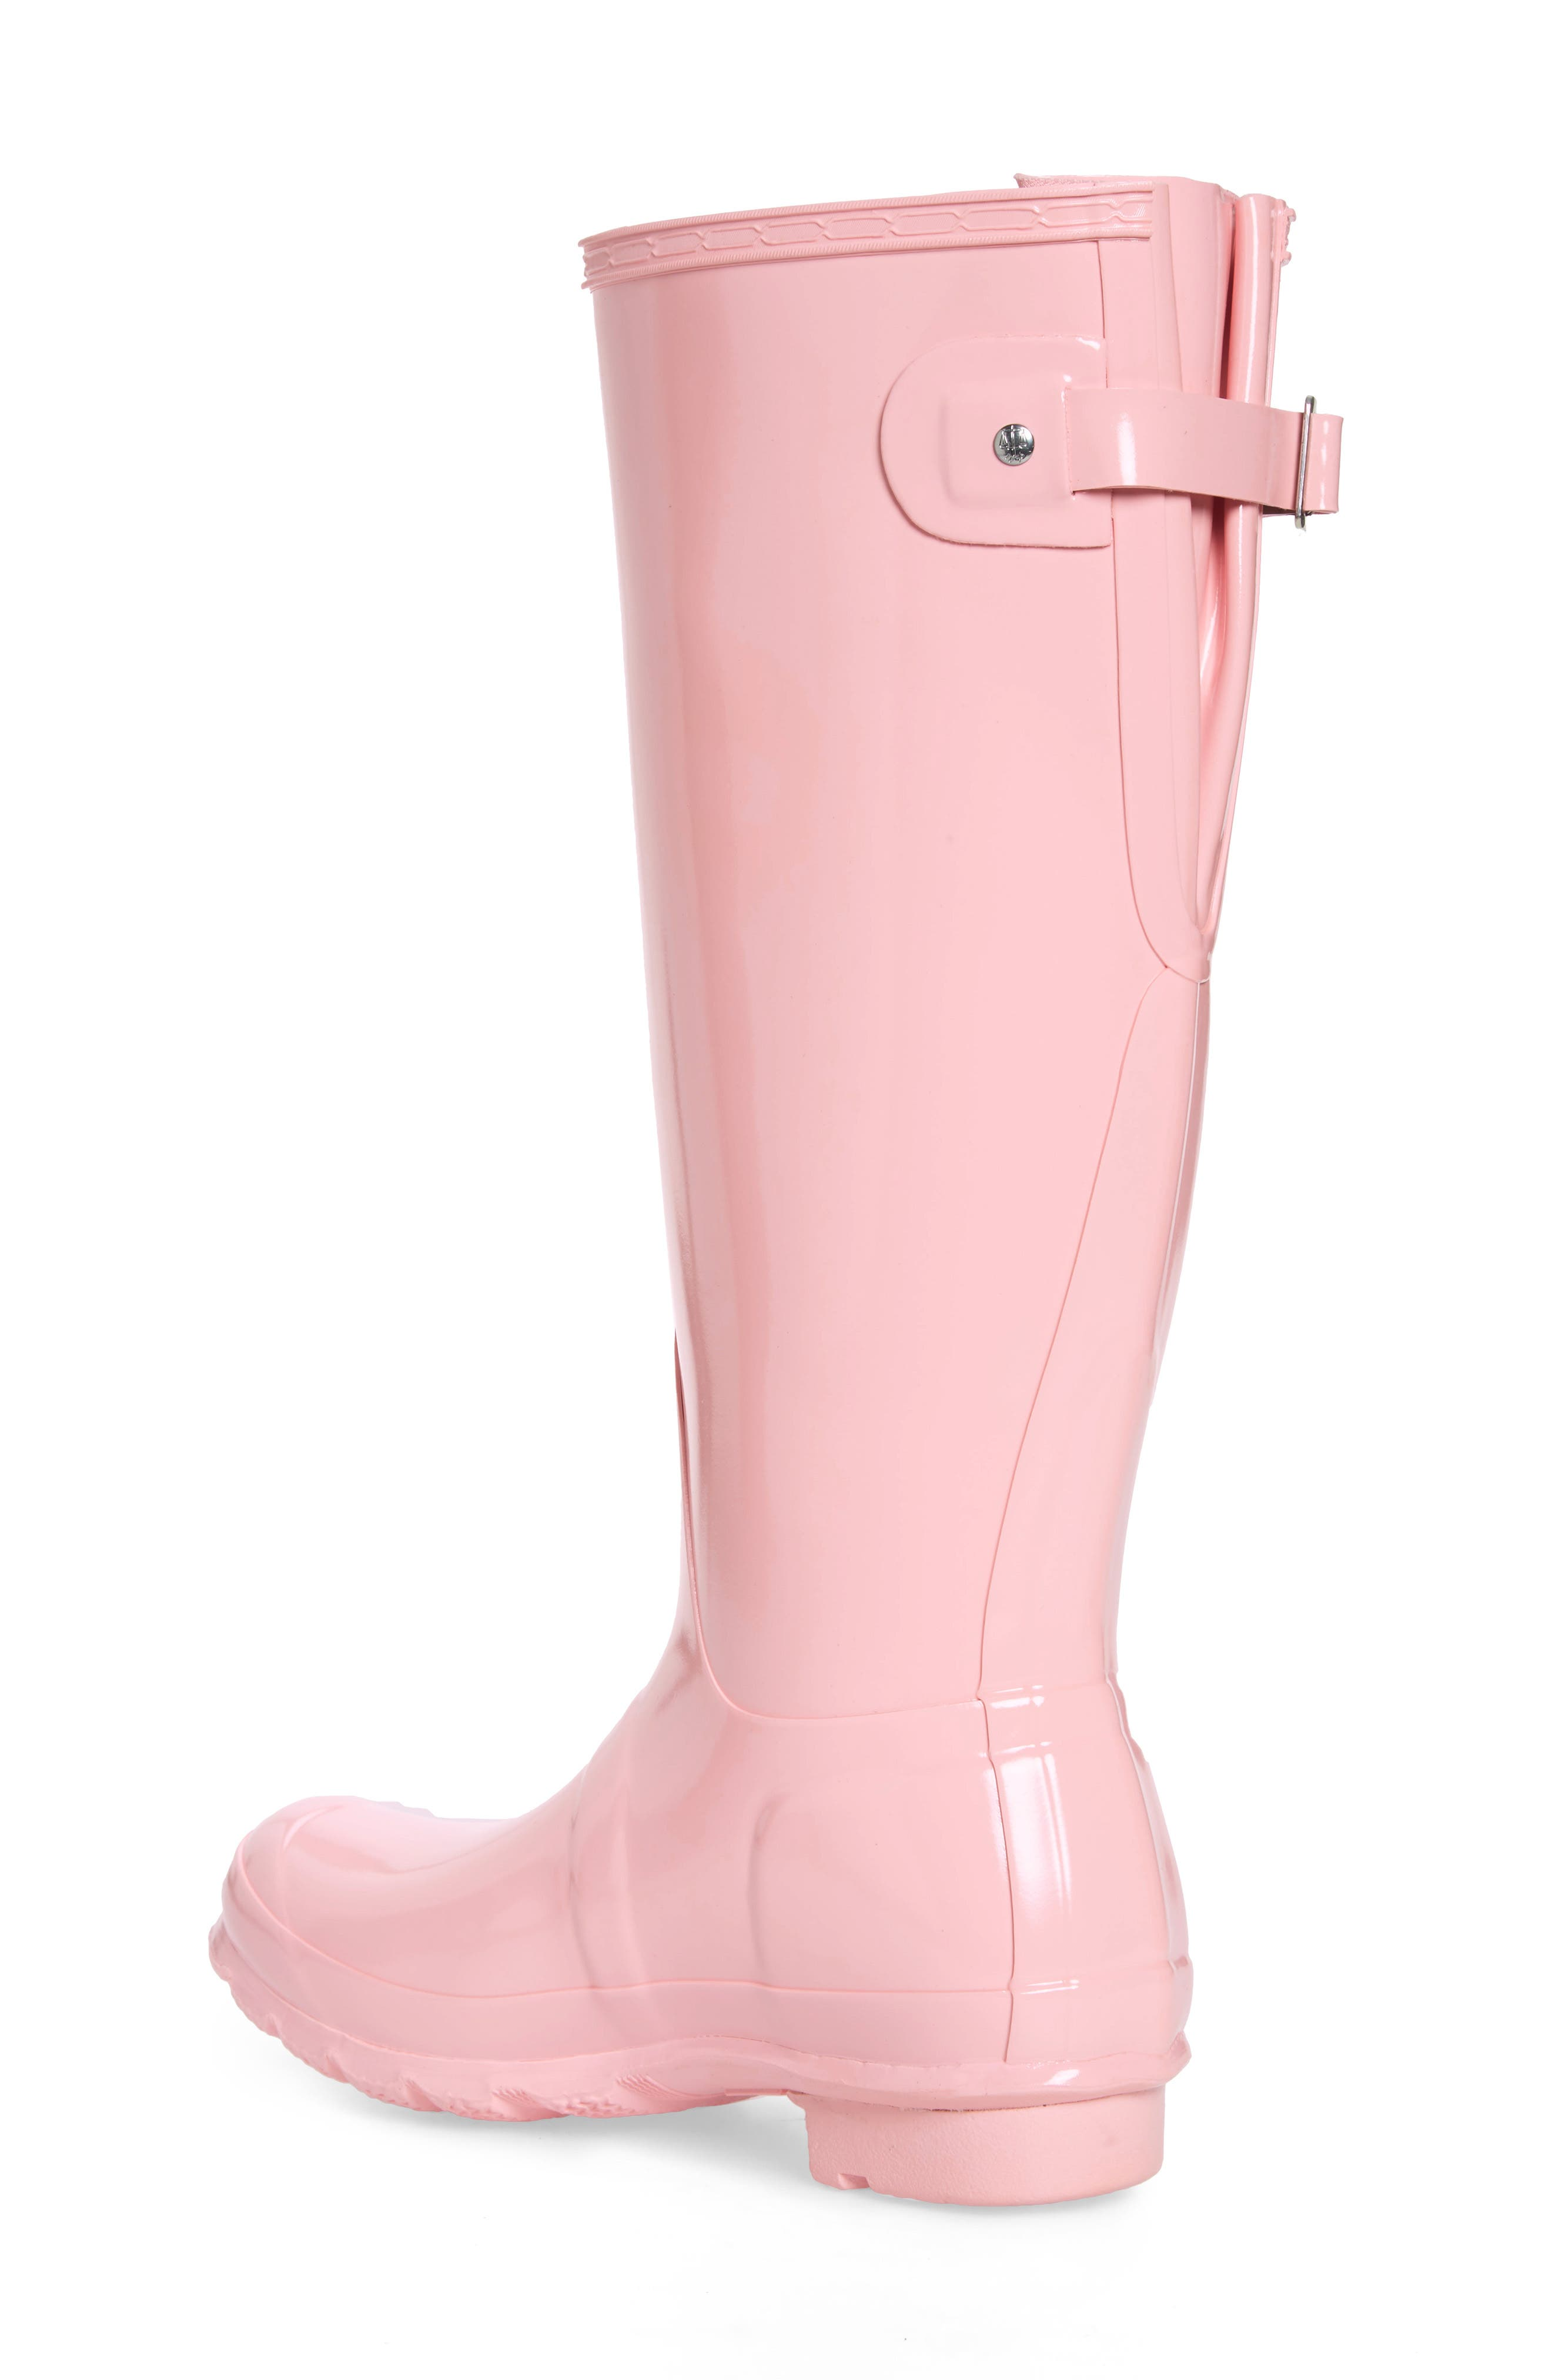 Adjustable Back Gloss Waterproof Rain Boot,                             Alternate thumbnail 2, color,                             CANDY FLOSS RUBBER